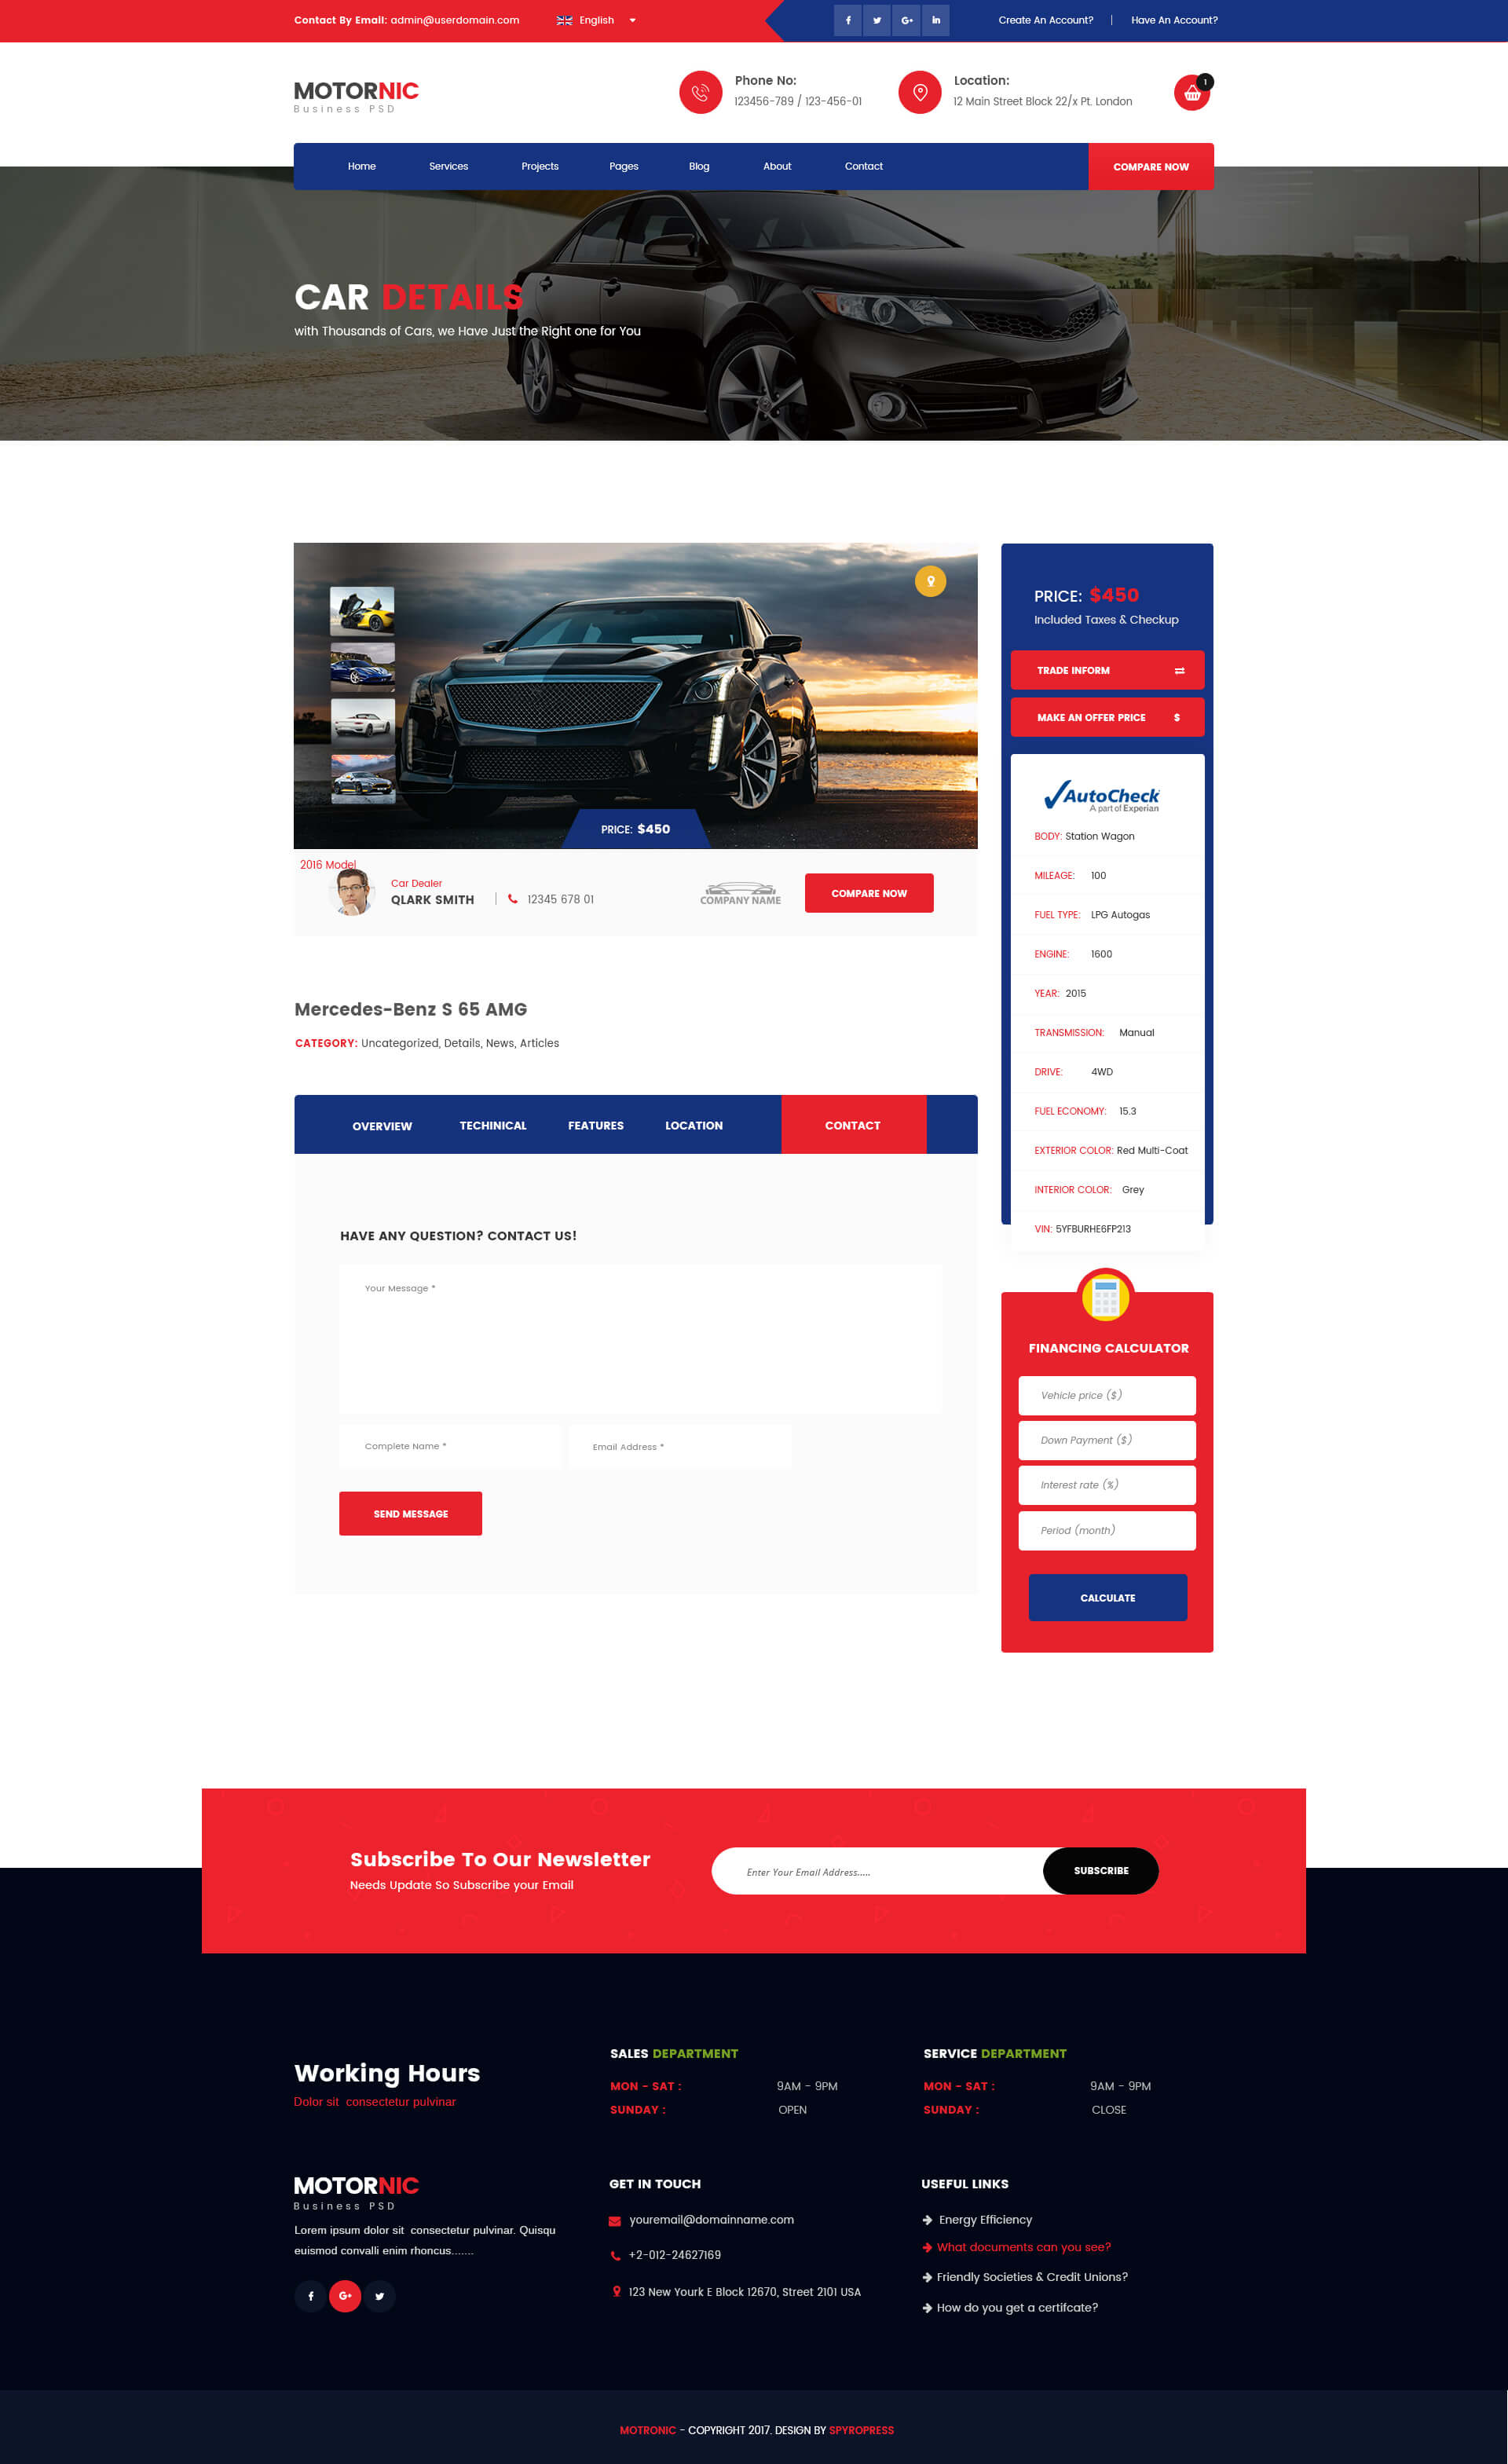 motornic vehicle marketplace psd template by spyropress themeforest